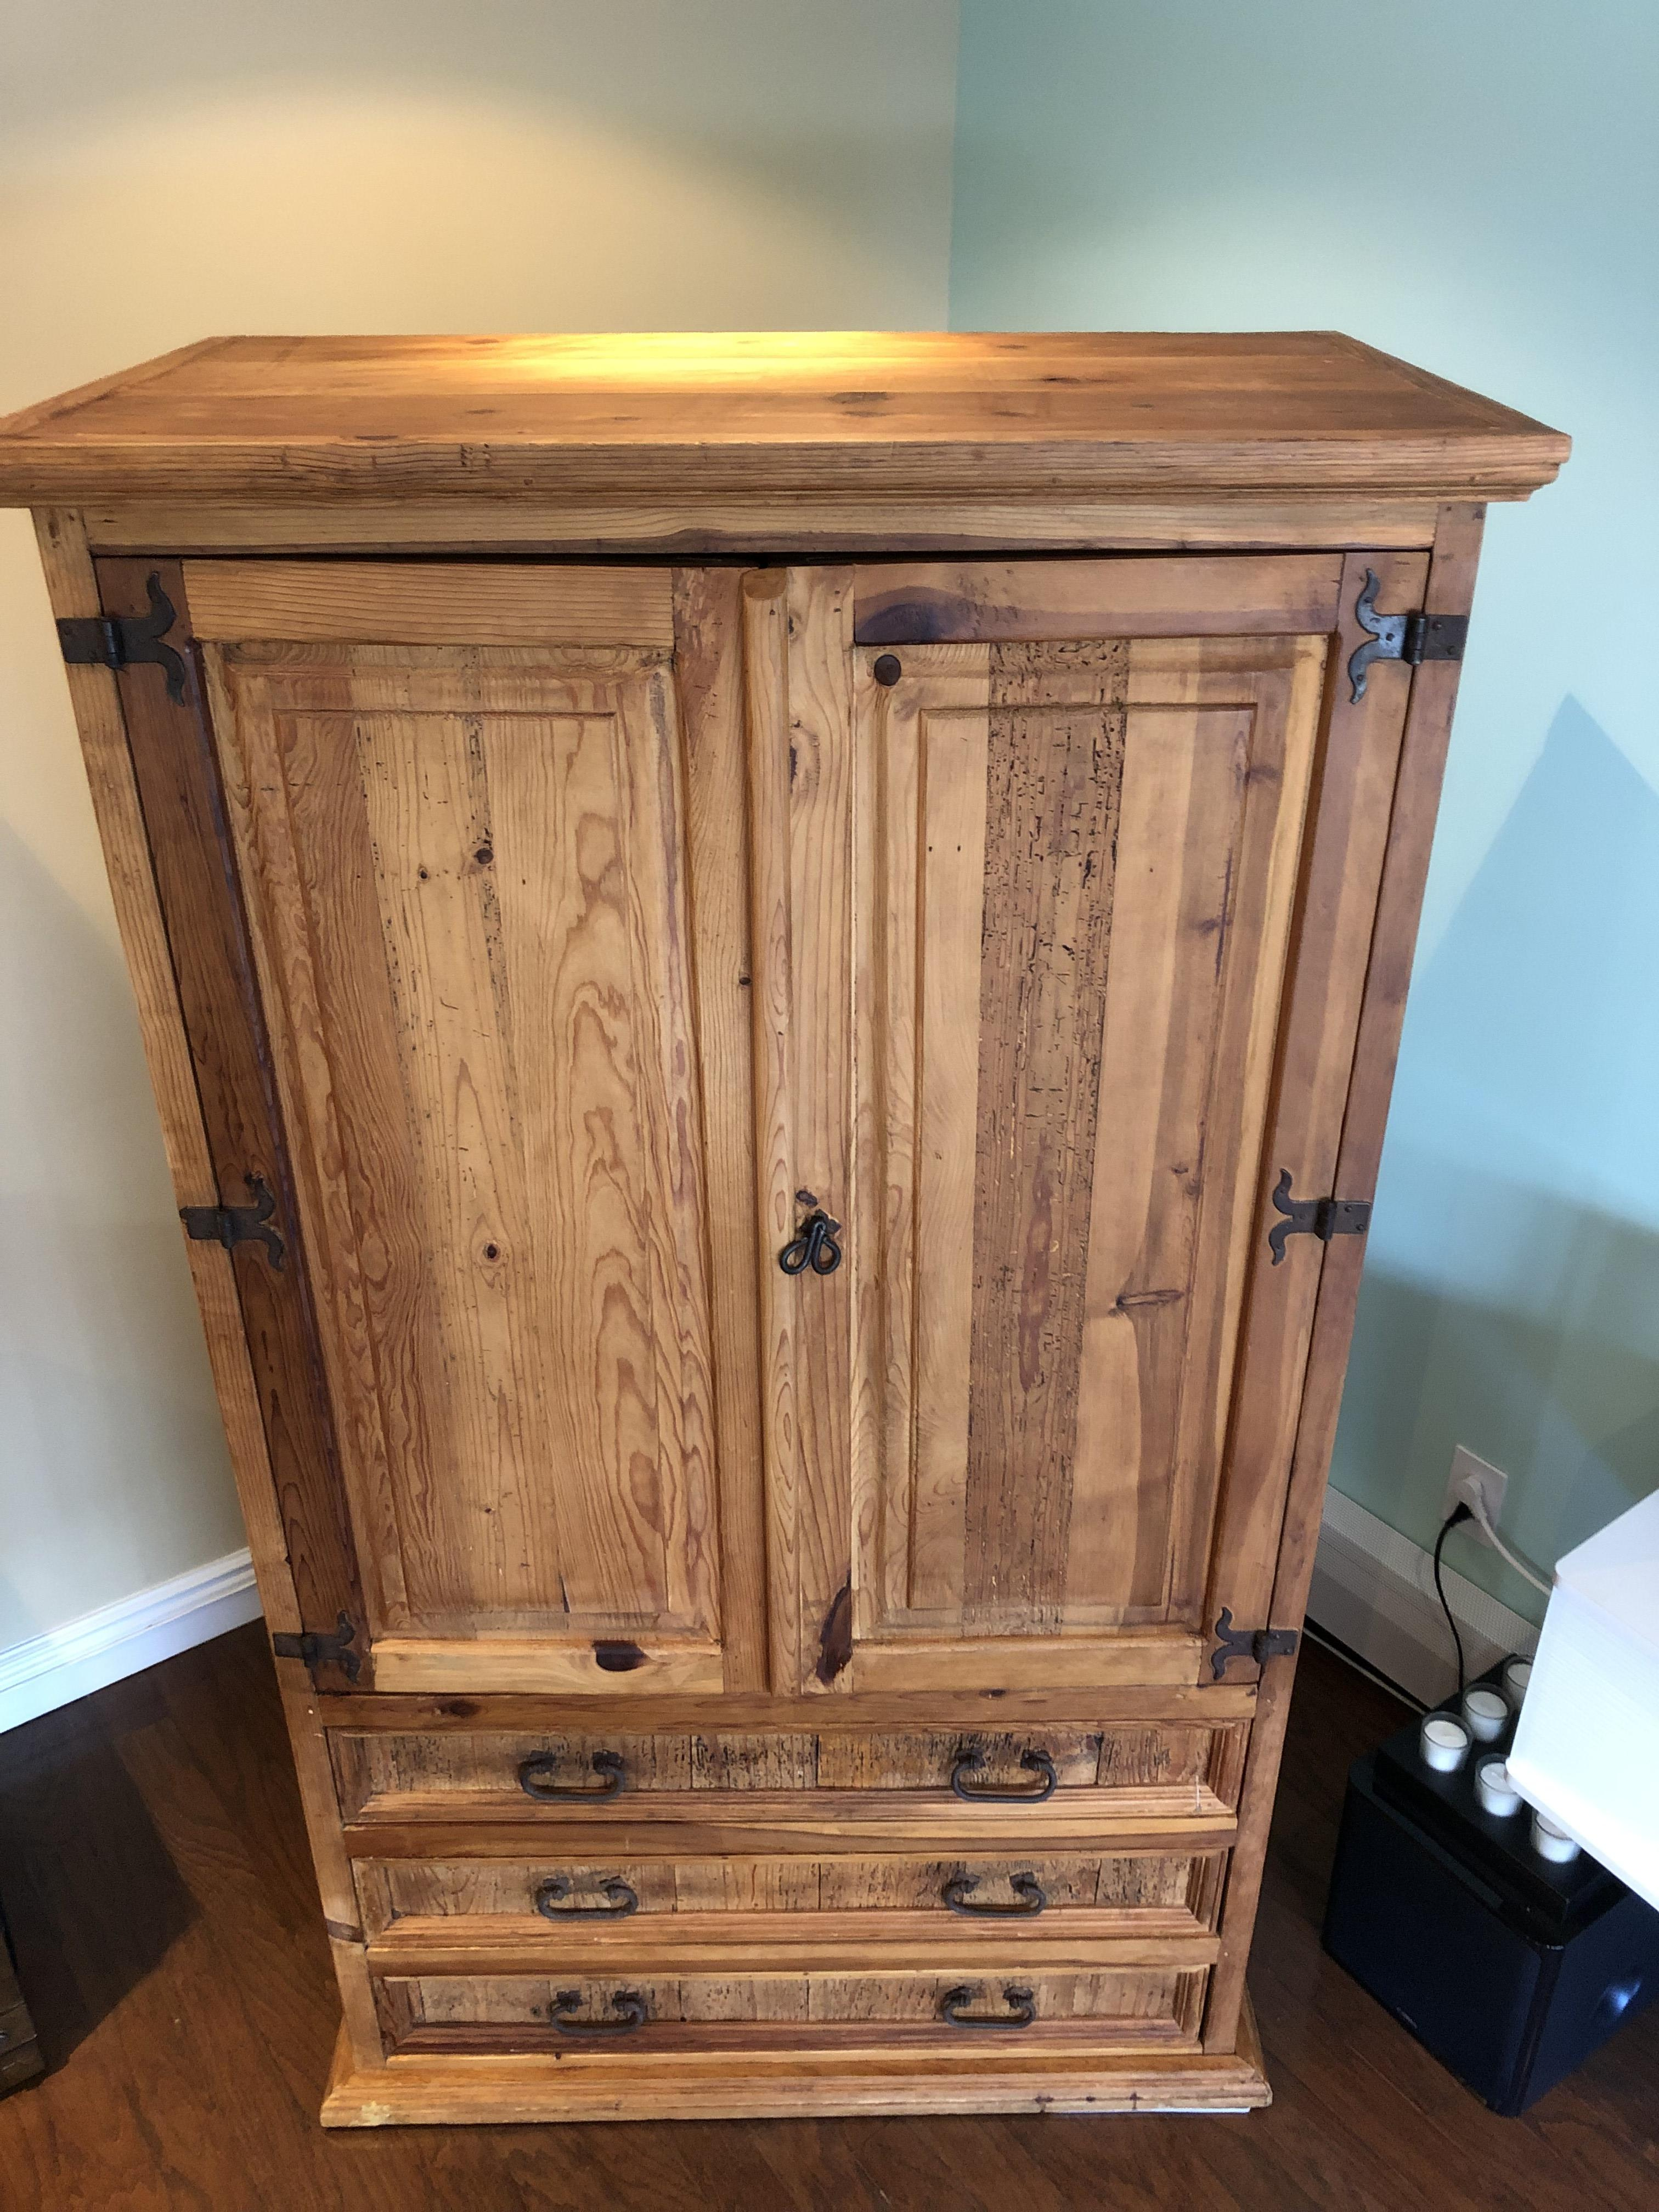 Country Rustic Wood Armoire w/ Rustic Hardware